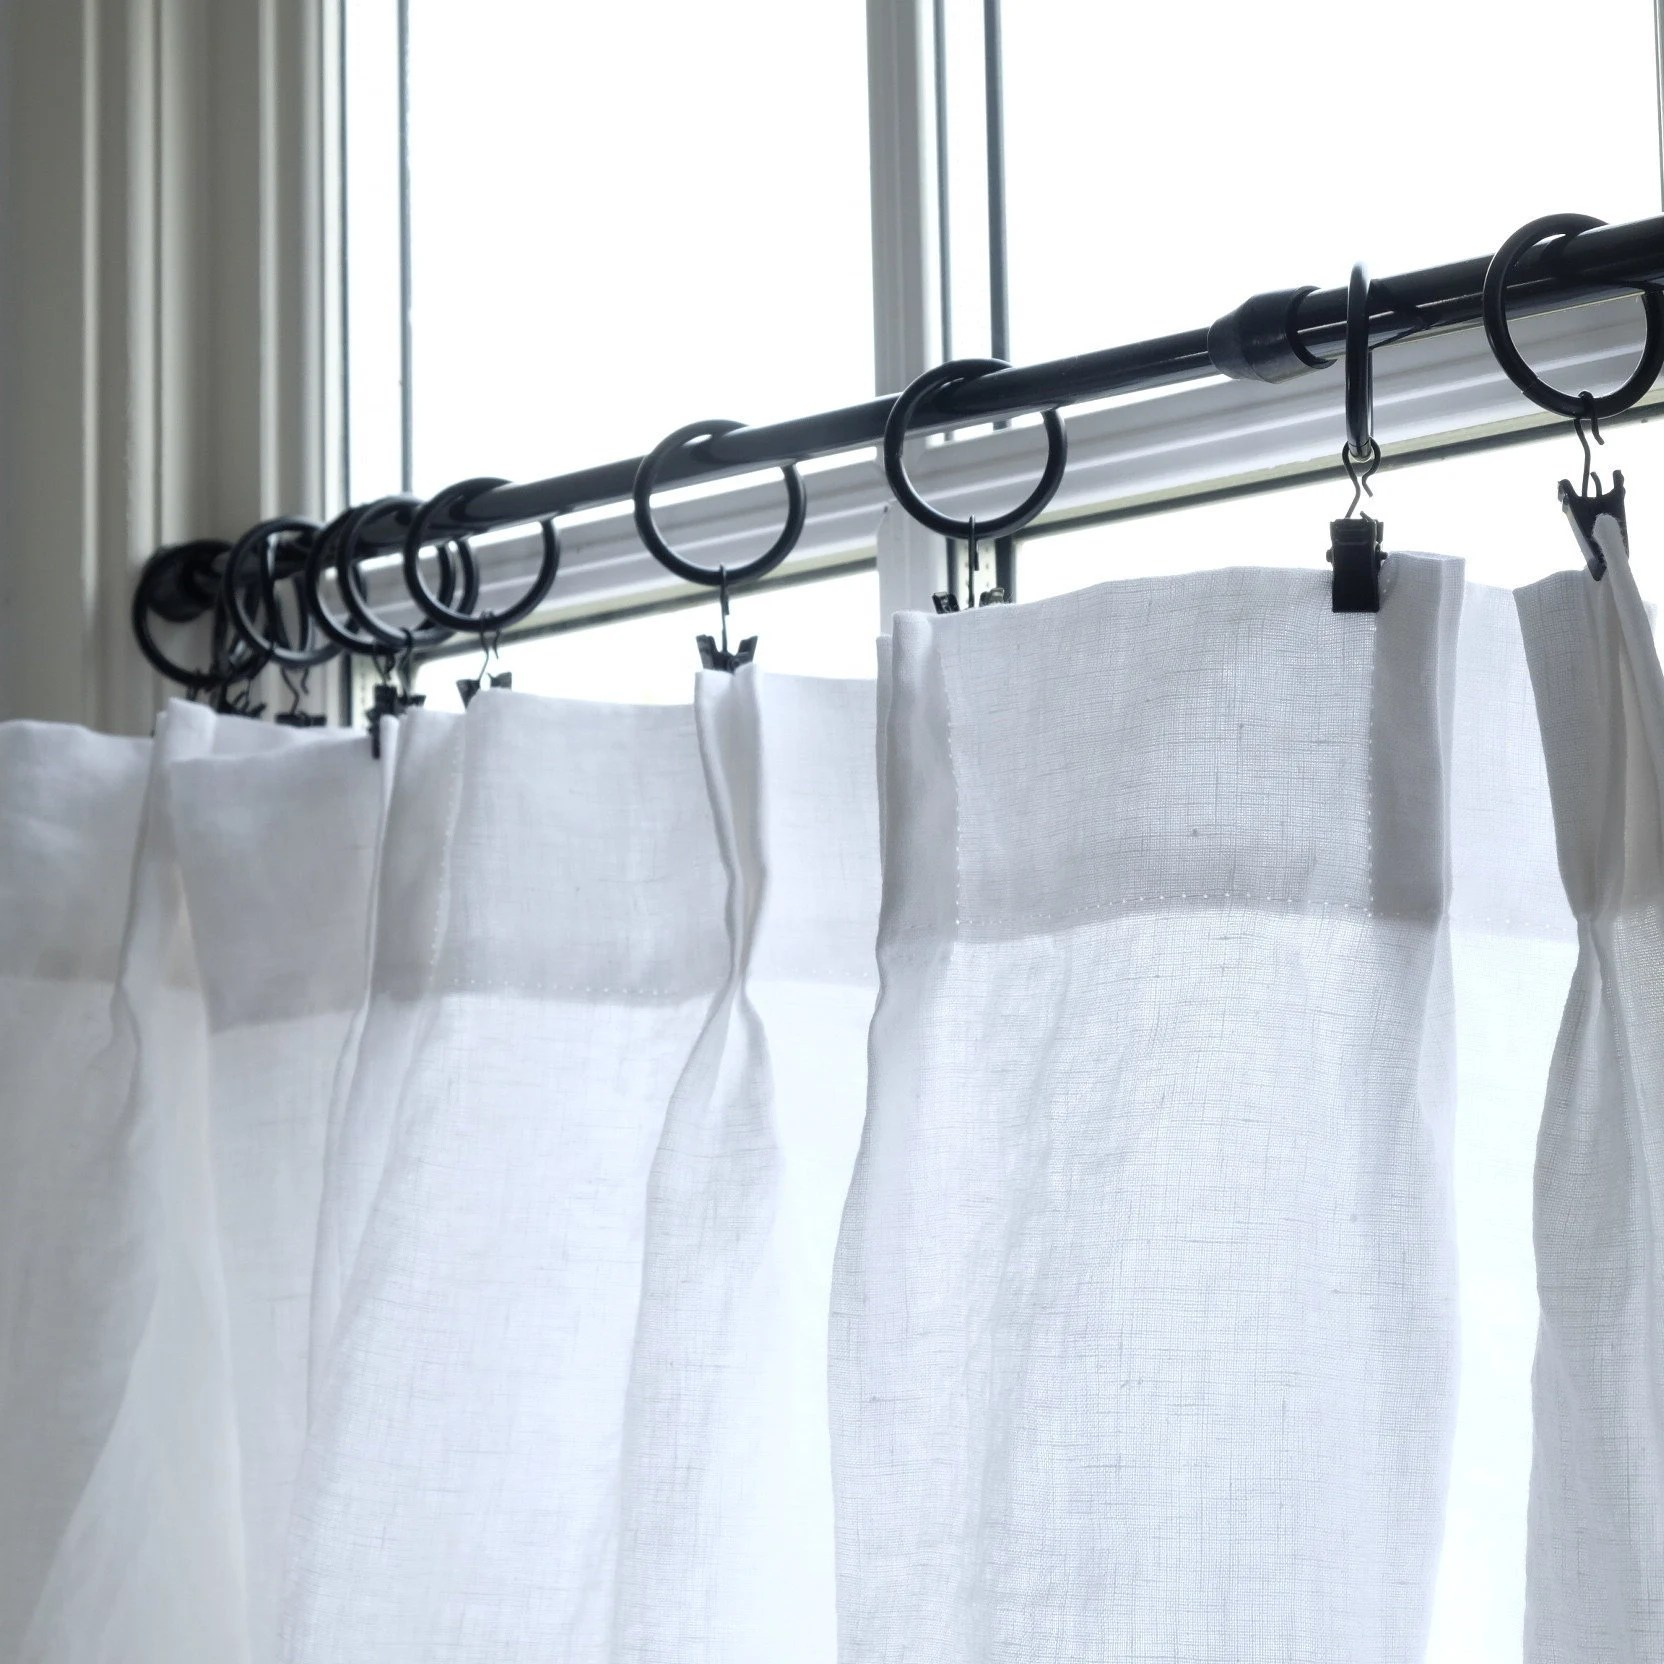 Cafe Curtain Clips Linen Cafe Curtains Clip Rings Cafe Curtain Rings Black Metal Farmhouse Style